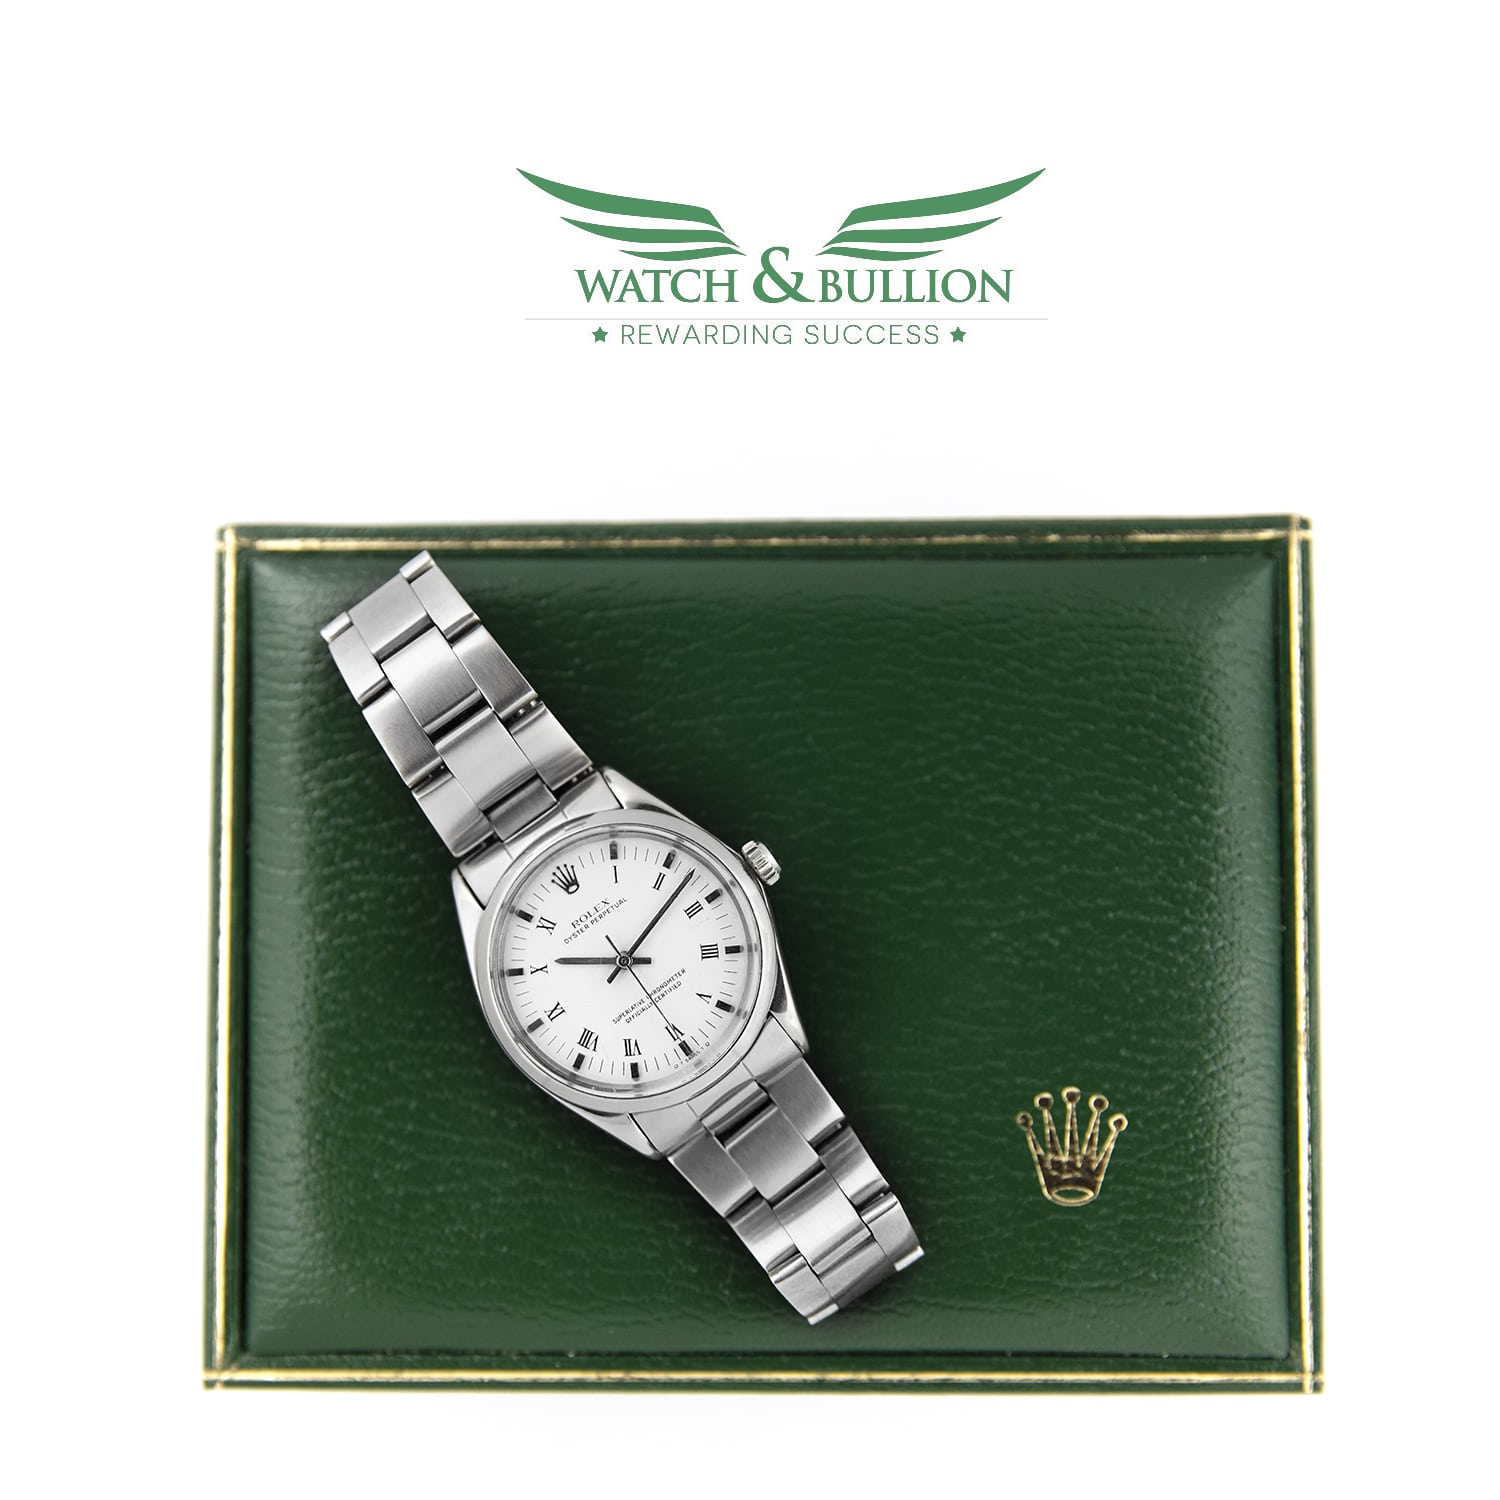 Rolex Oyster Perpetual 5500 White Roman Numeral Dial